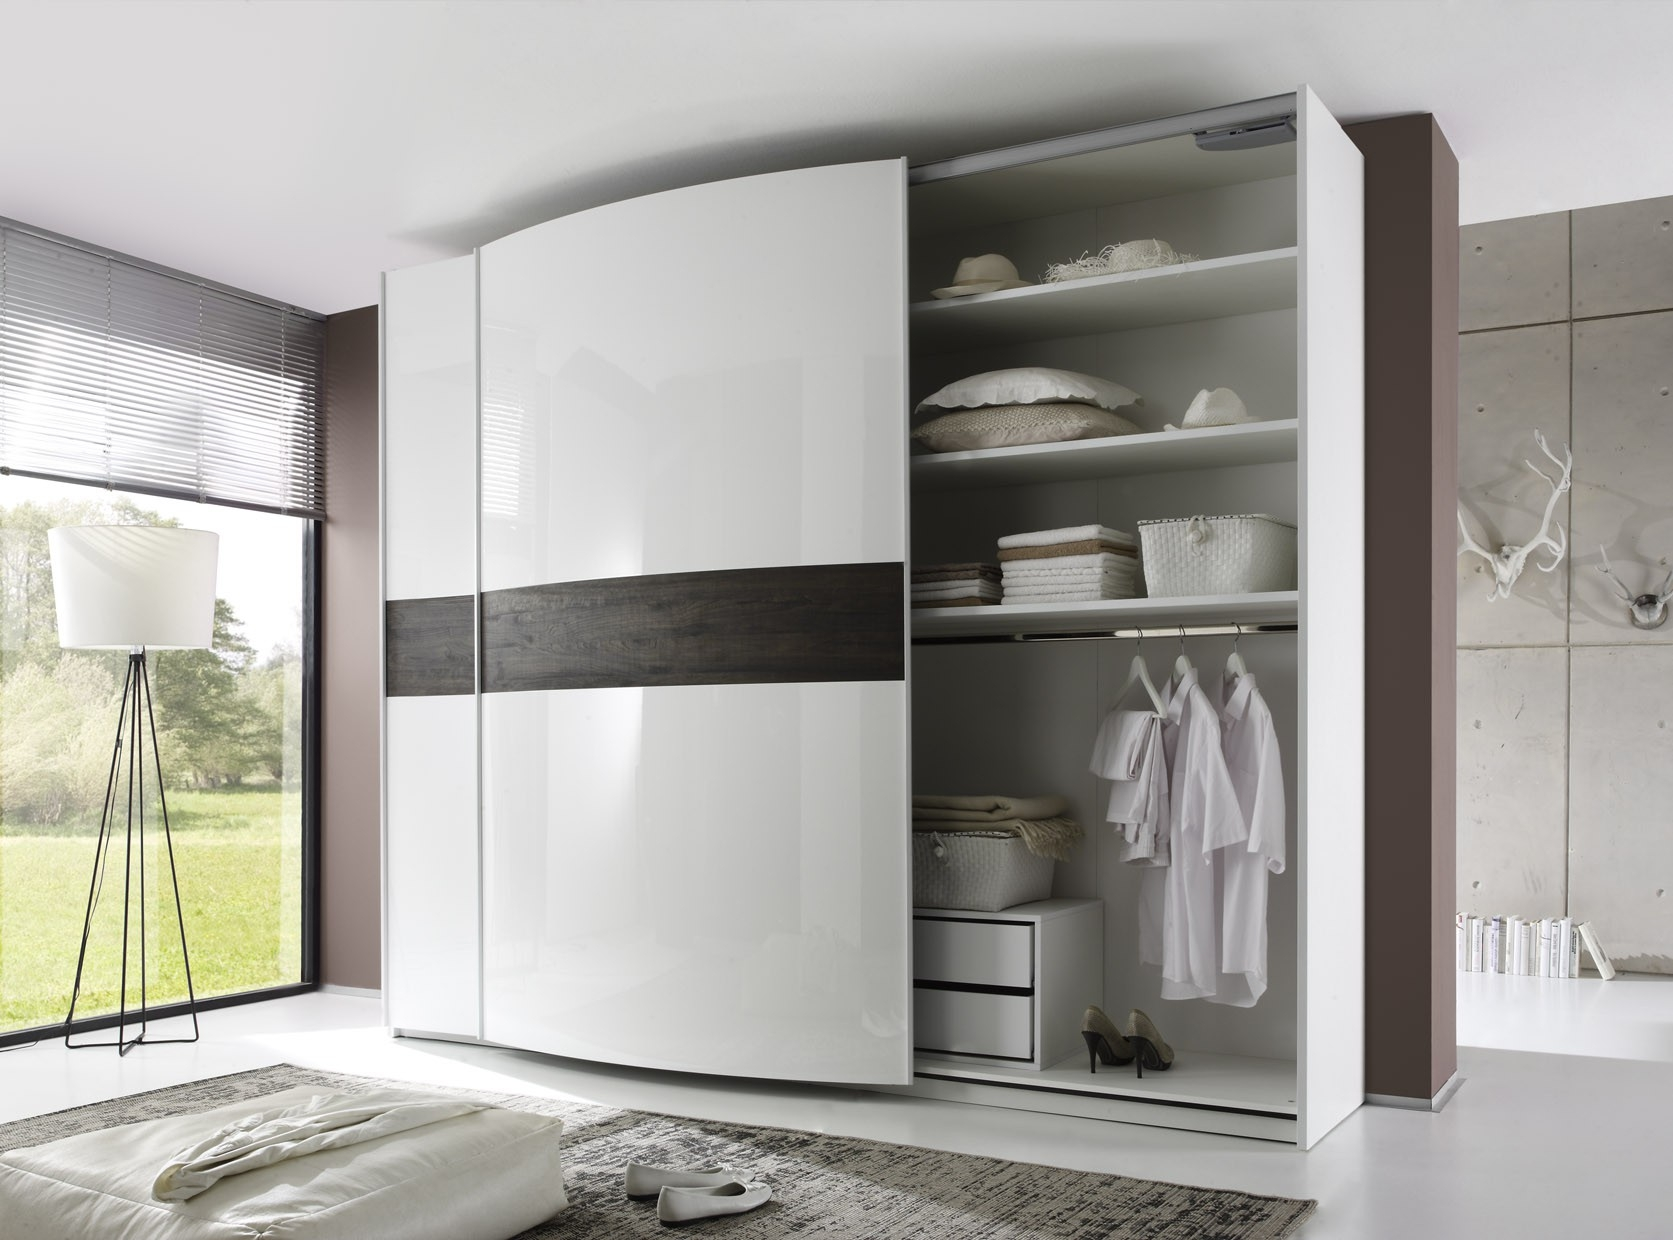 Tambura Curved Sliding Doors Wardrobe White Wenge Buy Online At With Curved Wardrobe Doors (Image 10 of 15)